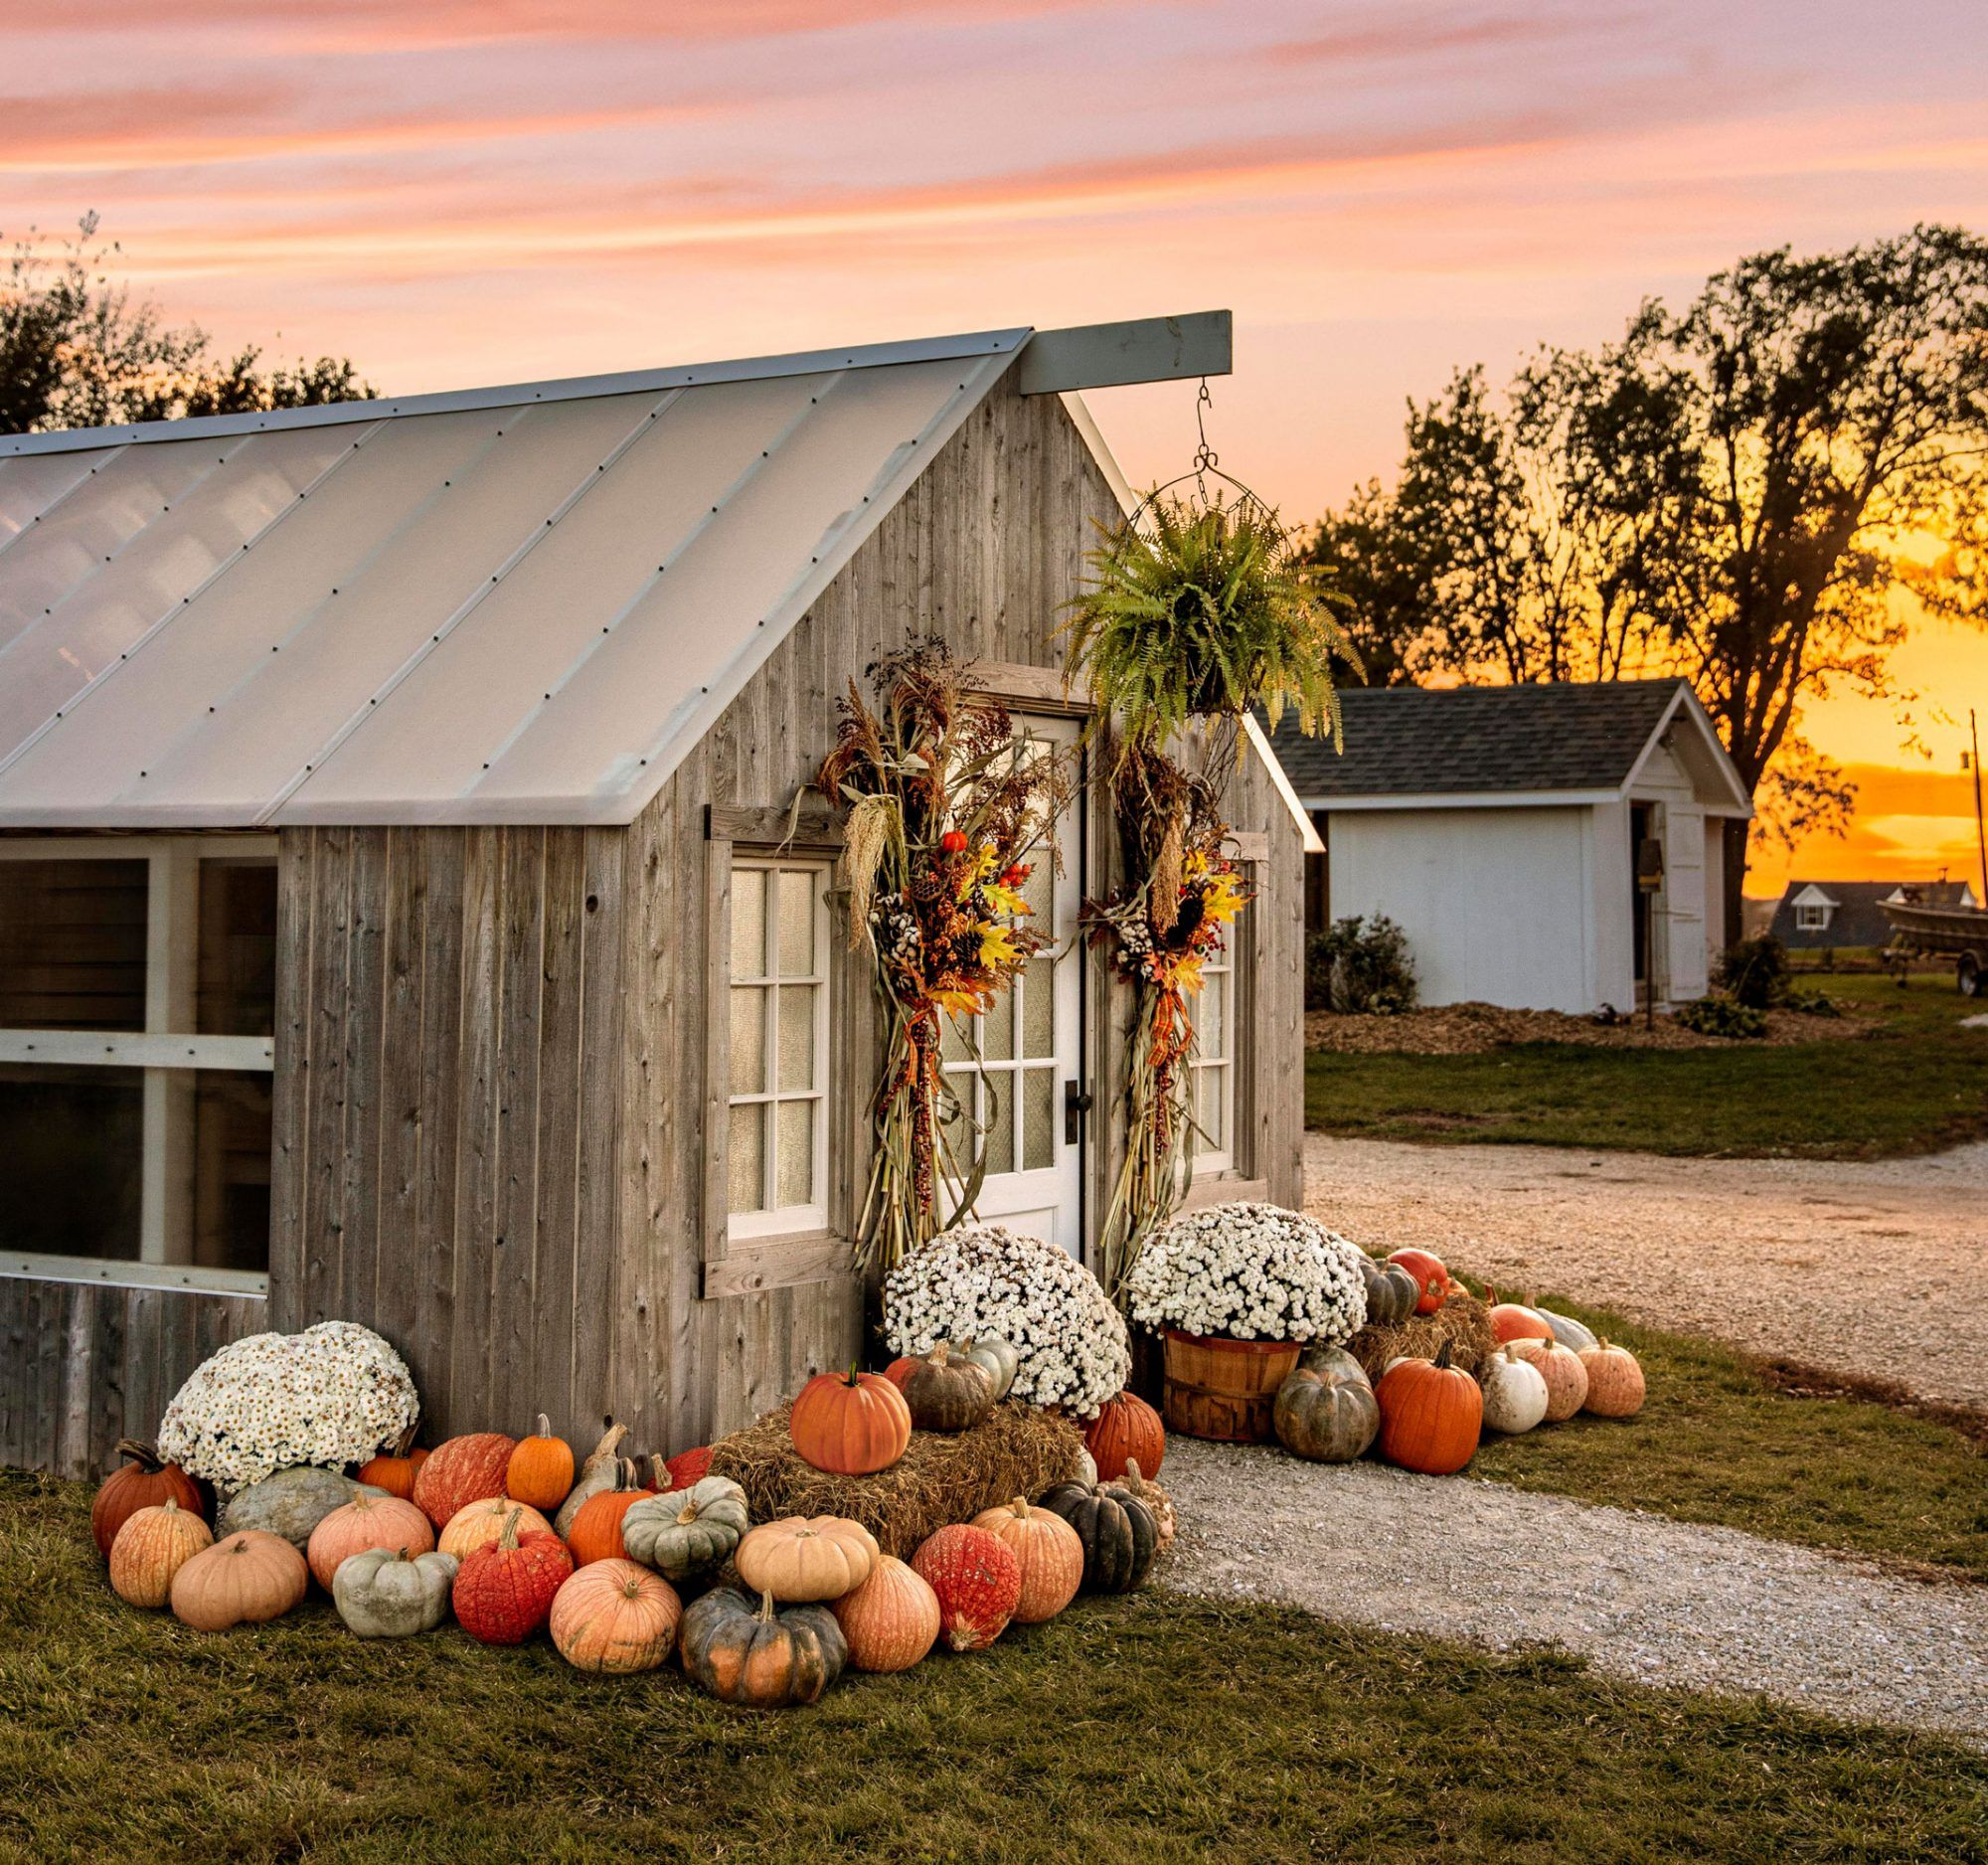 14 Editor Picks For This Fall In 2020 Iowa Travel Flower Prints Art Fruit Trees